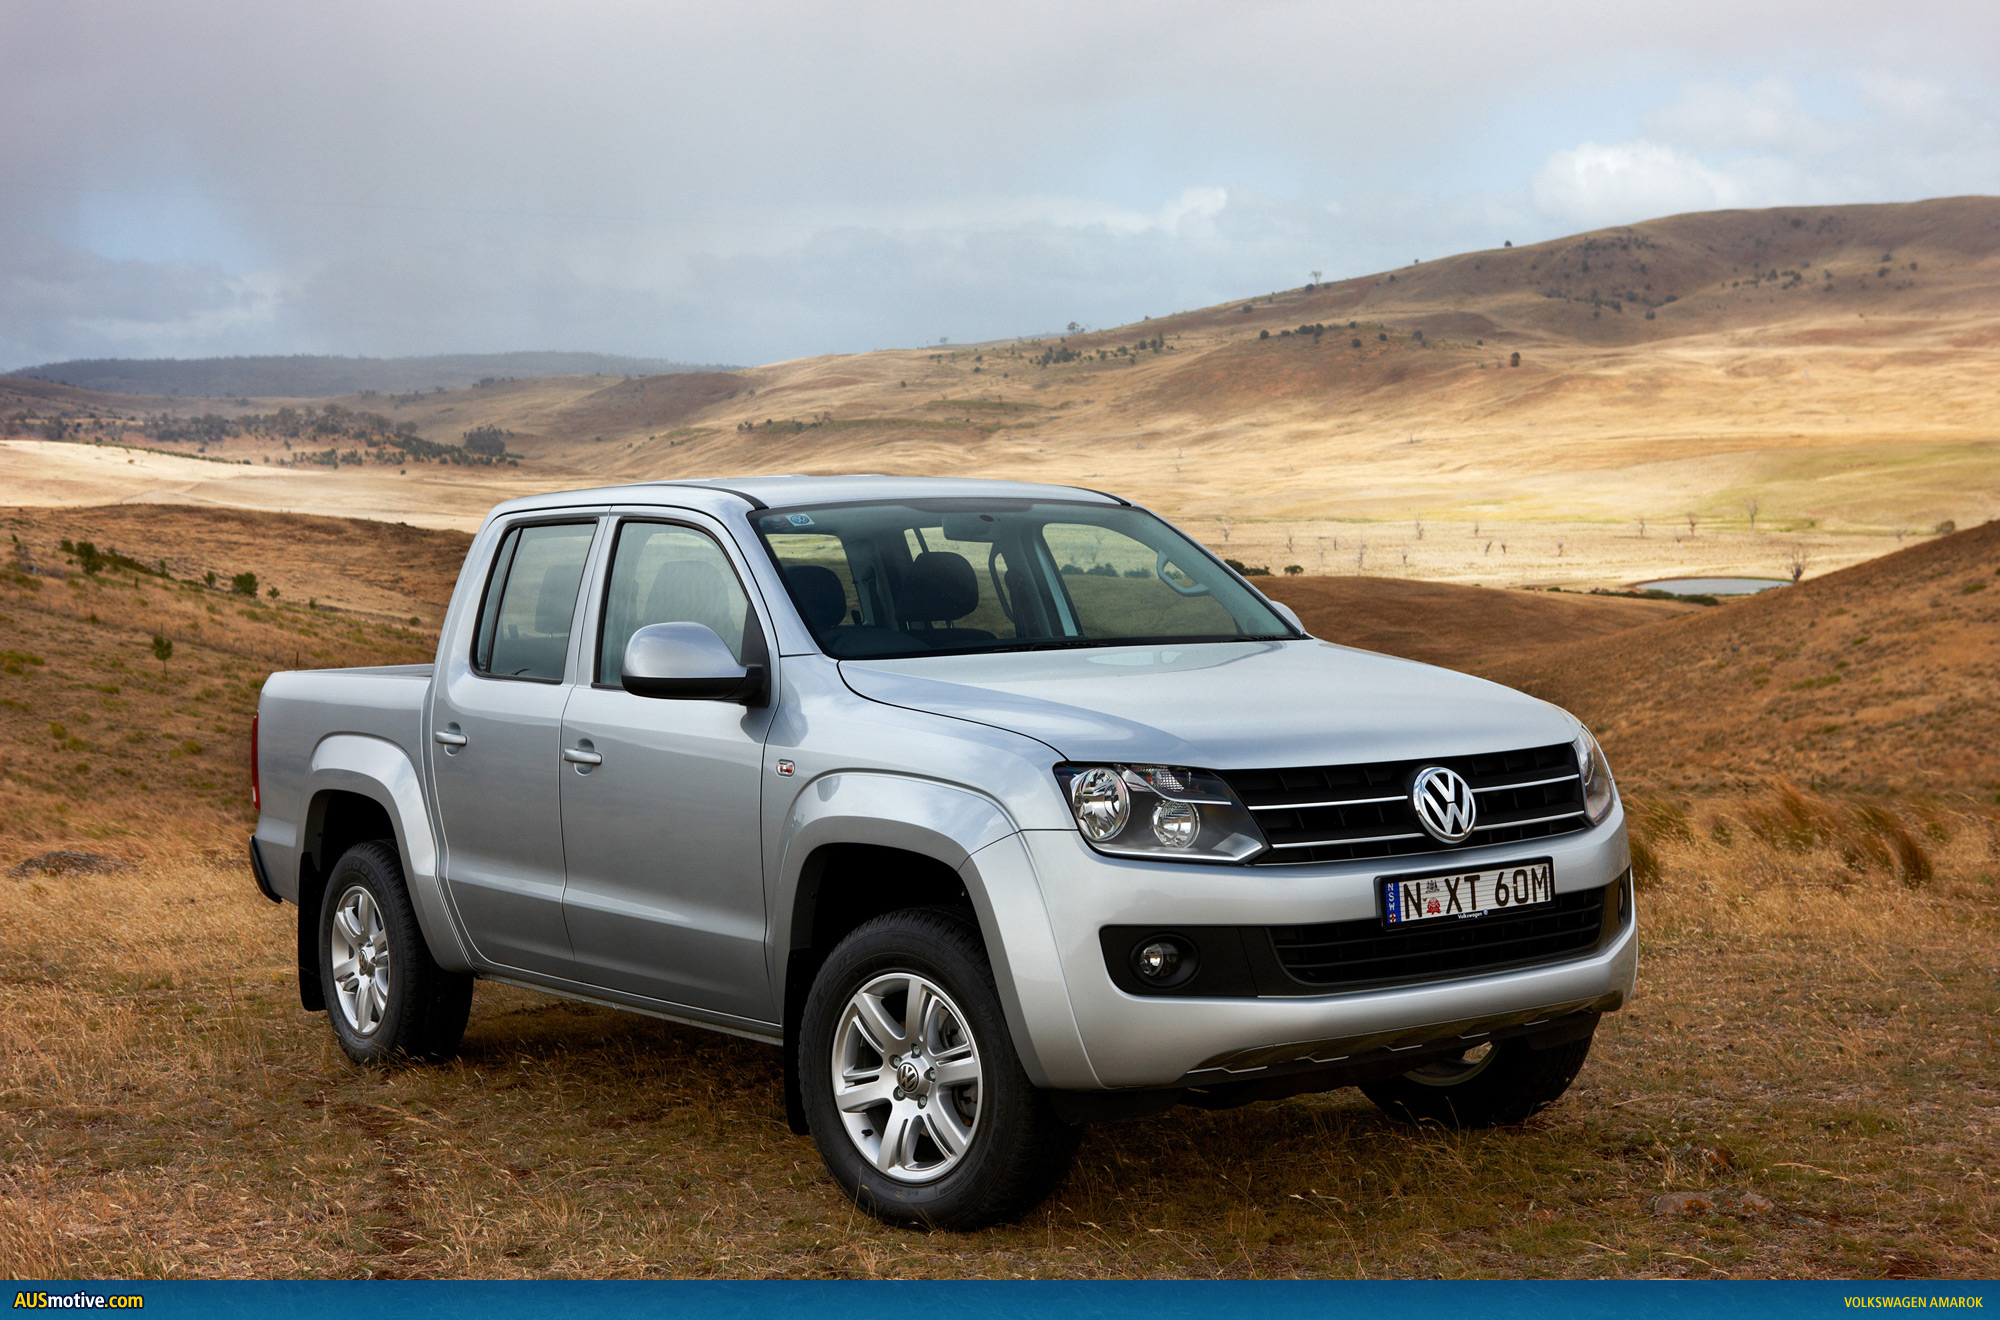 Vw Amarok Dimensions Ausmotive Volkswagen Amarok Australian Pricing And Specs